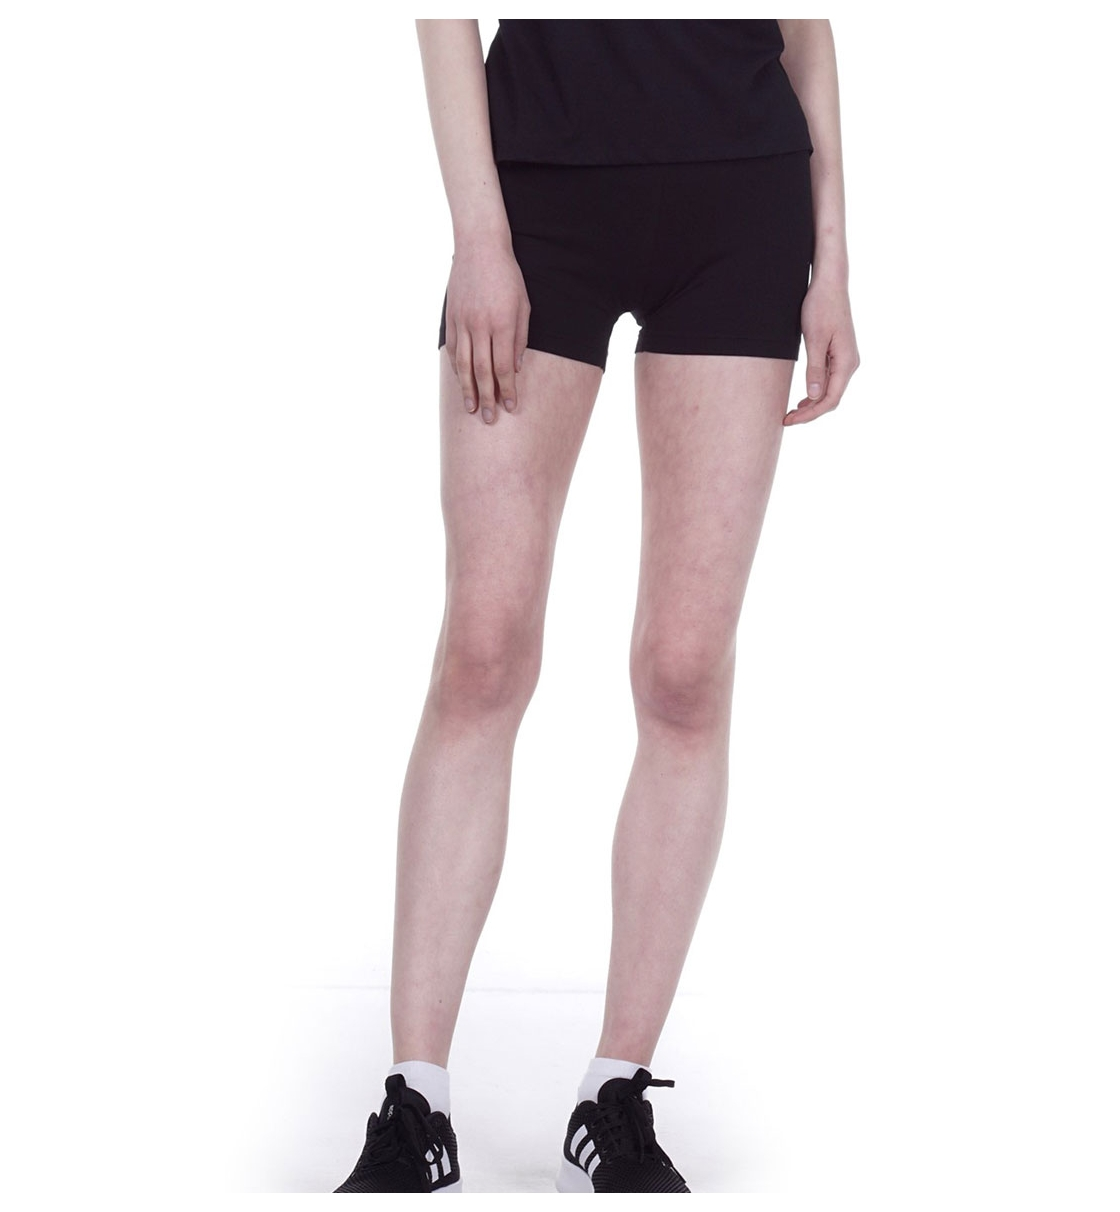 Body Action Ss20 Women Short Tights